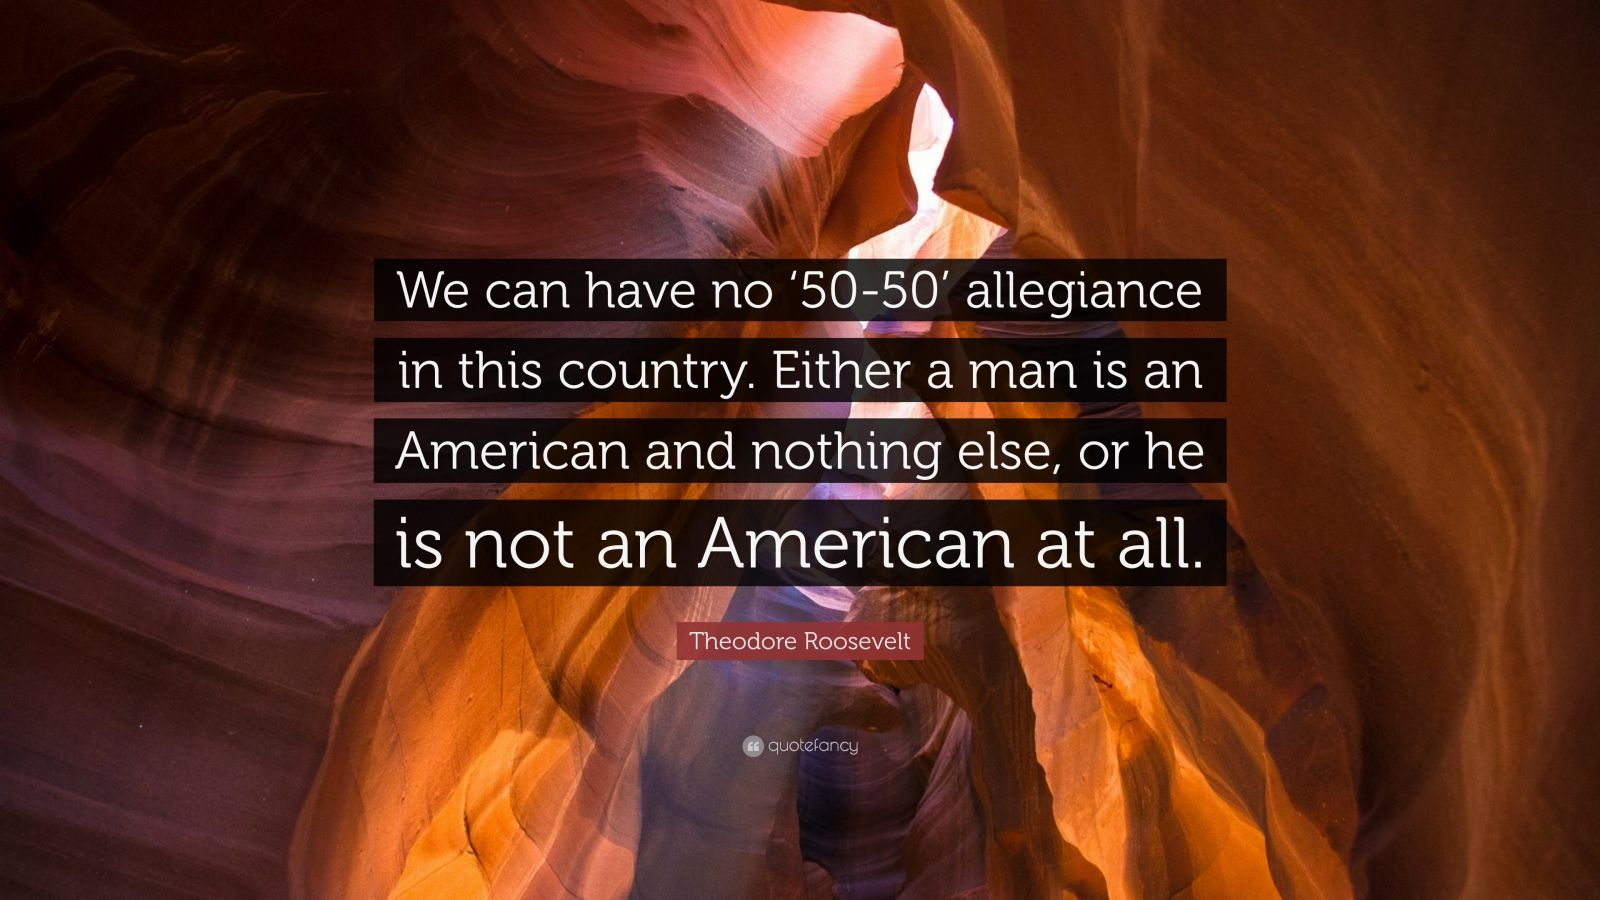 """Theodore Roosevelt Quote: """"We can have no '50-50' allegiance in this country. Either a man is an American and nothing else, or he is not an American at all."""""""